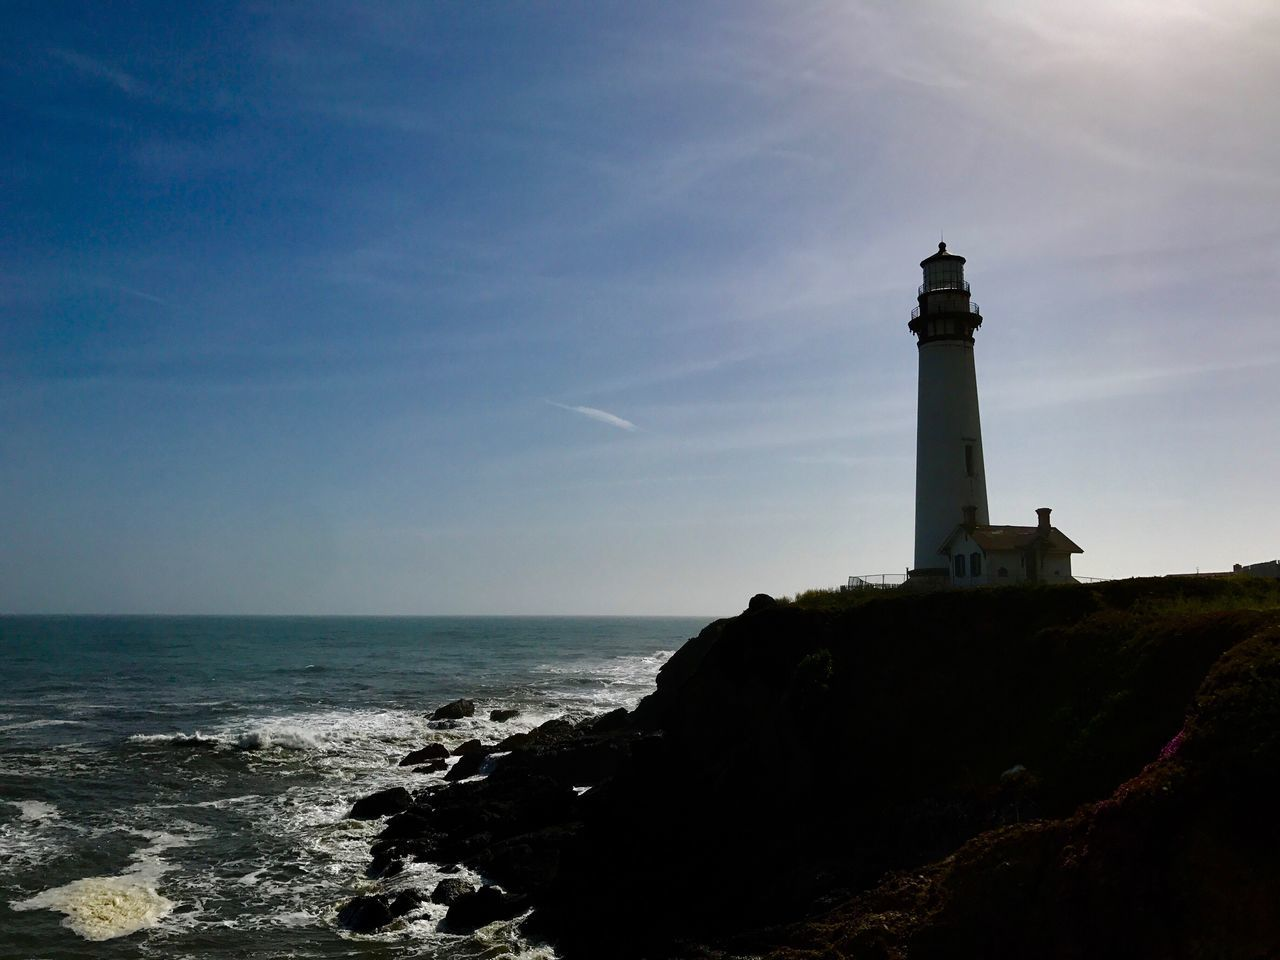 lighthouse, sea, guidance, architecture, horizon over water, safety, direction, sky, protection, nature, built structure, building exterior, water, beauty in nature, scenics, beach, cliff, outdoors, no people, day